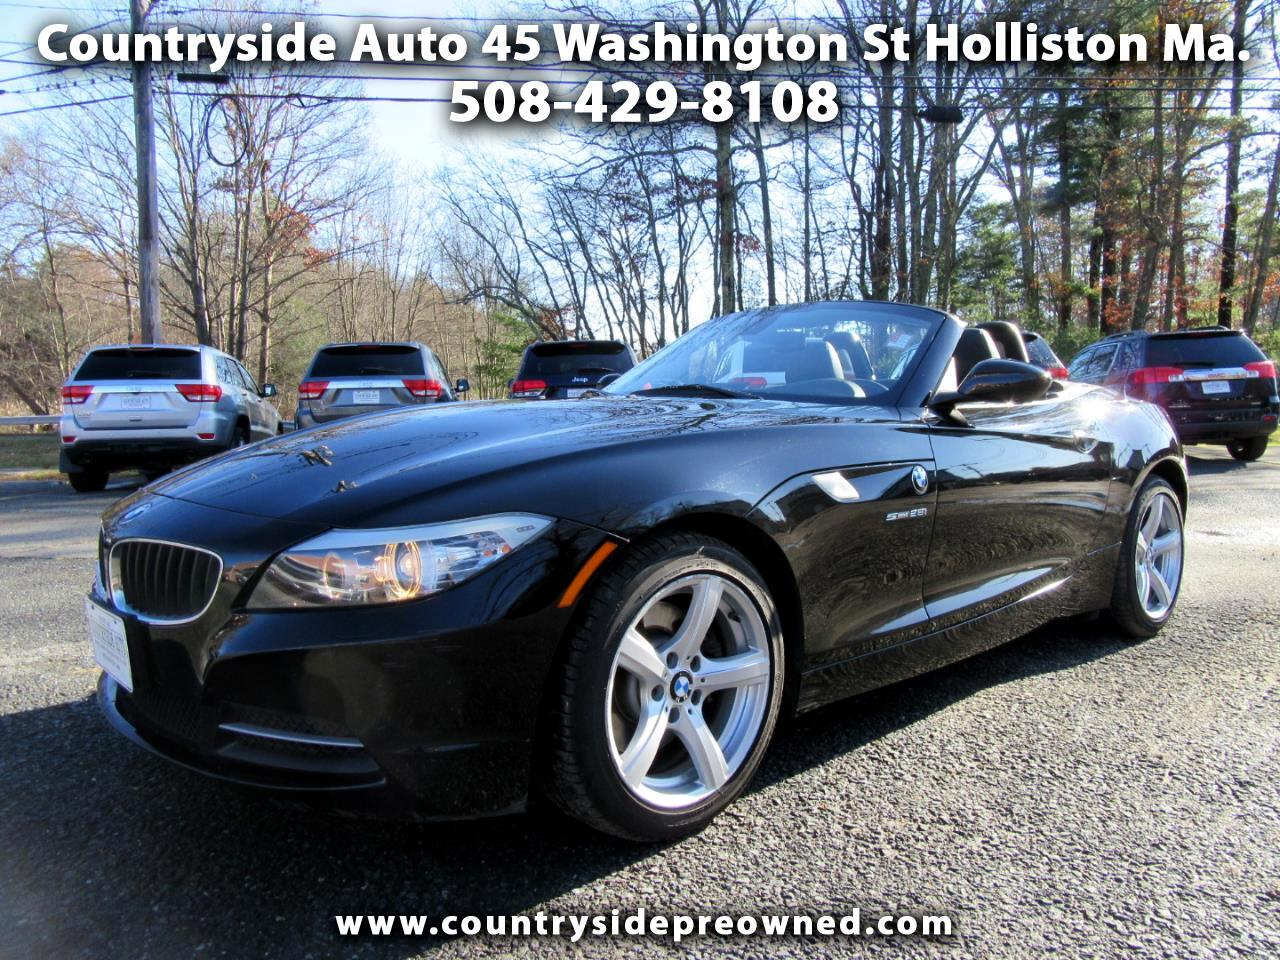 BMW Z4 sDrive28i 2013